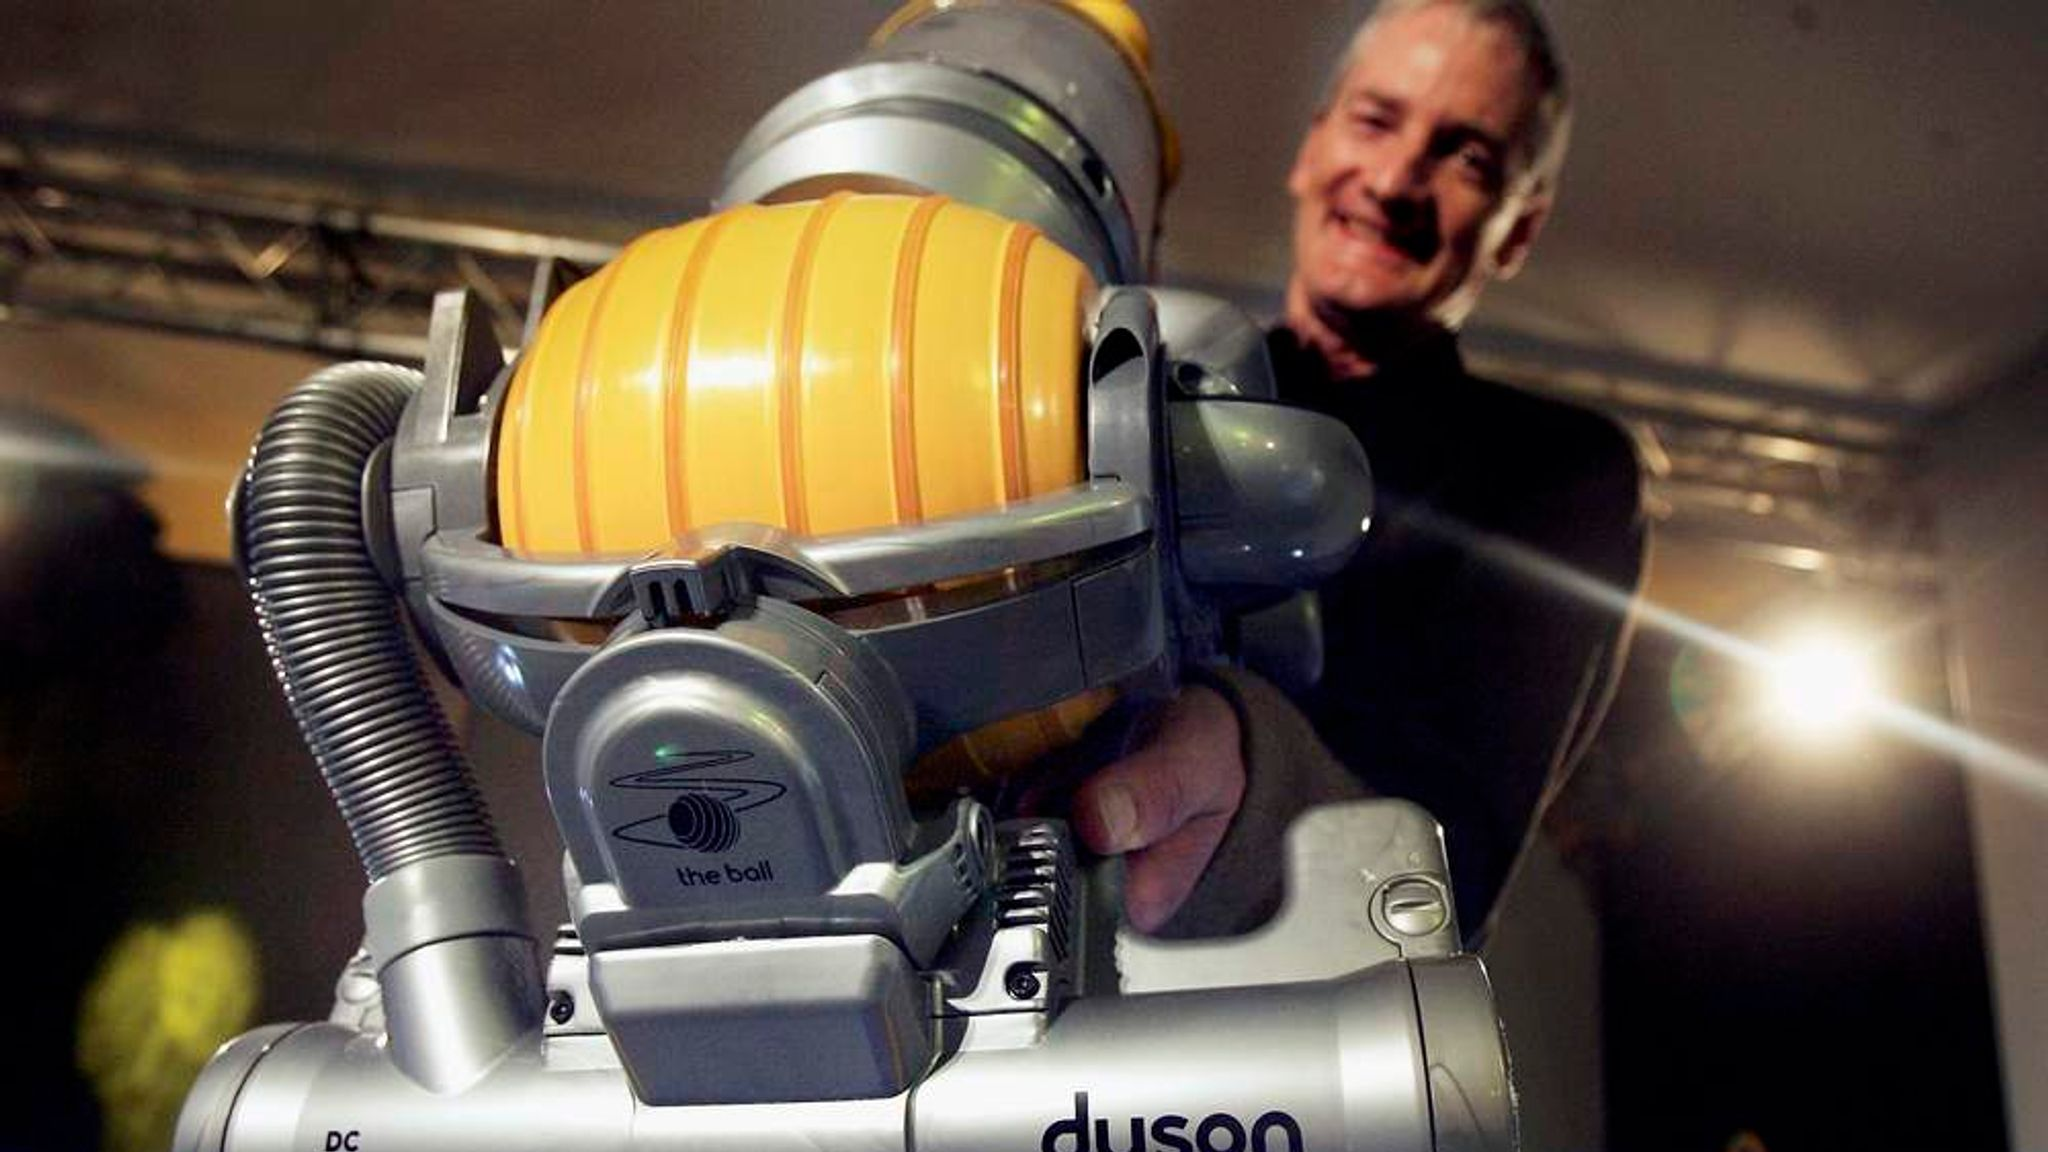 business plan for dyson 1 marketing planning 11 business mission and objectives at dyson, we are about to unveil our next big innovation the dyson air multiplier [1] is a ground-breaking new product.